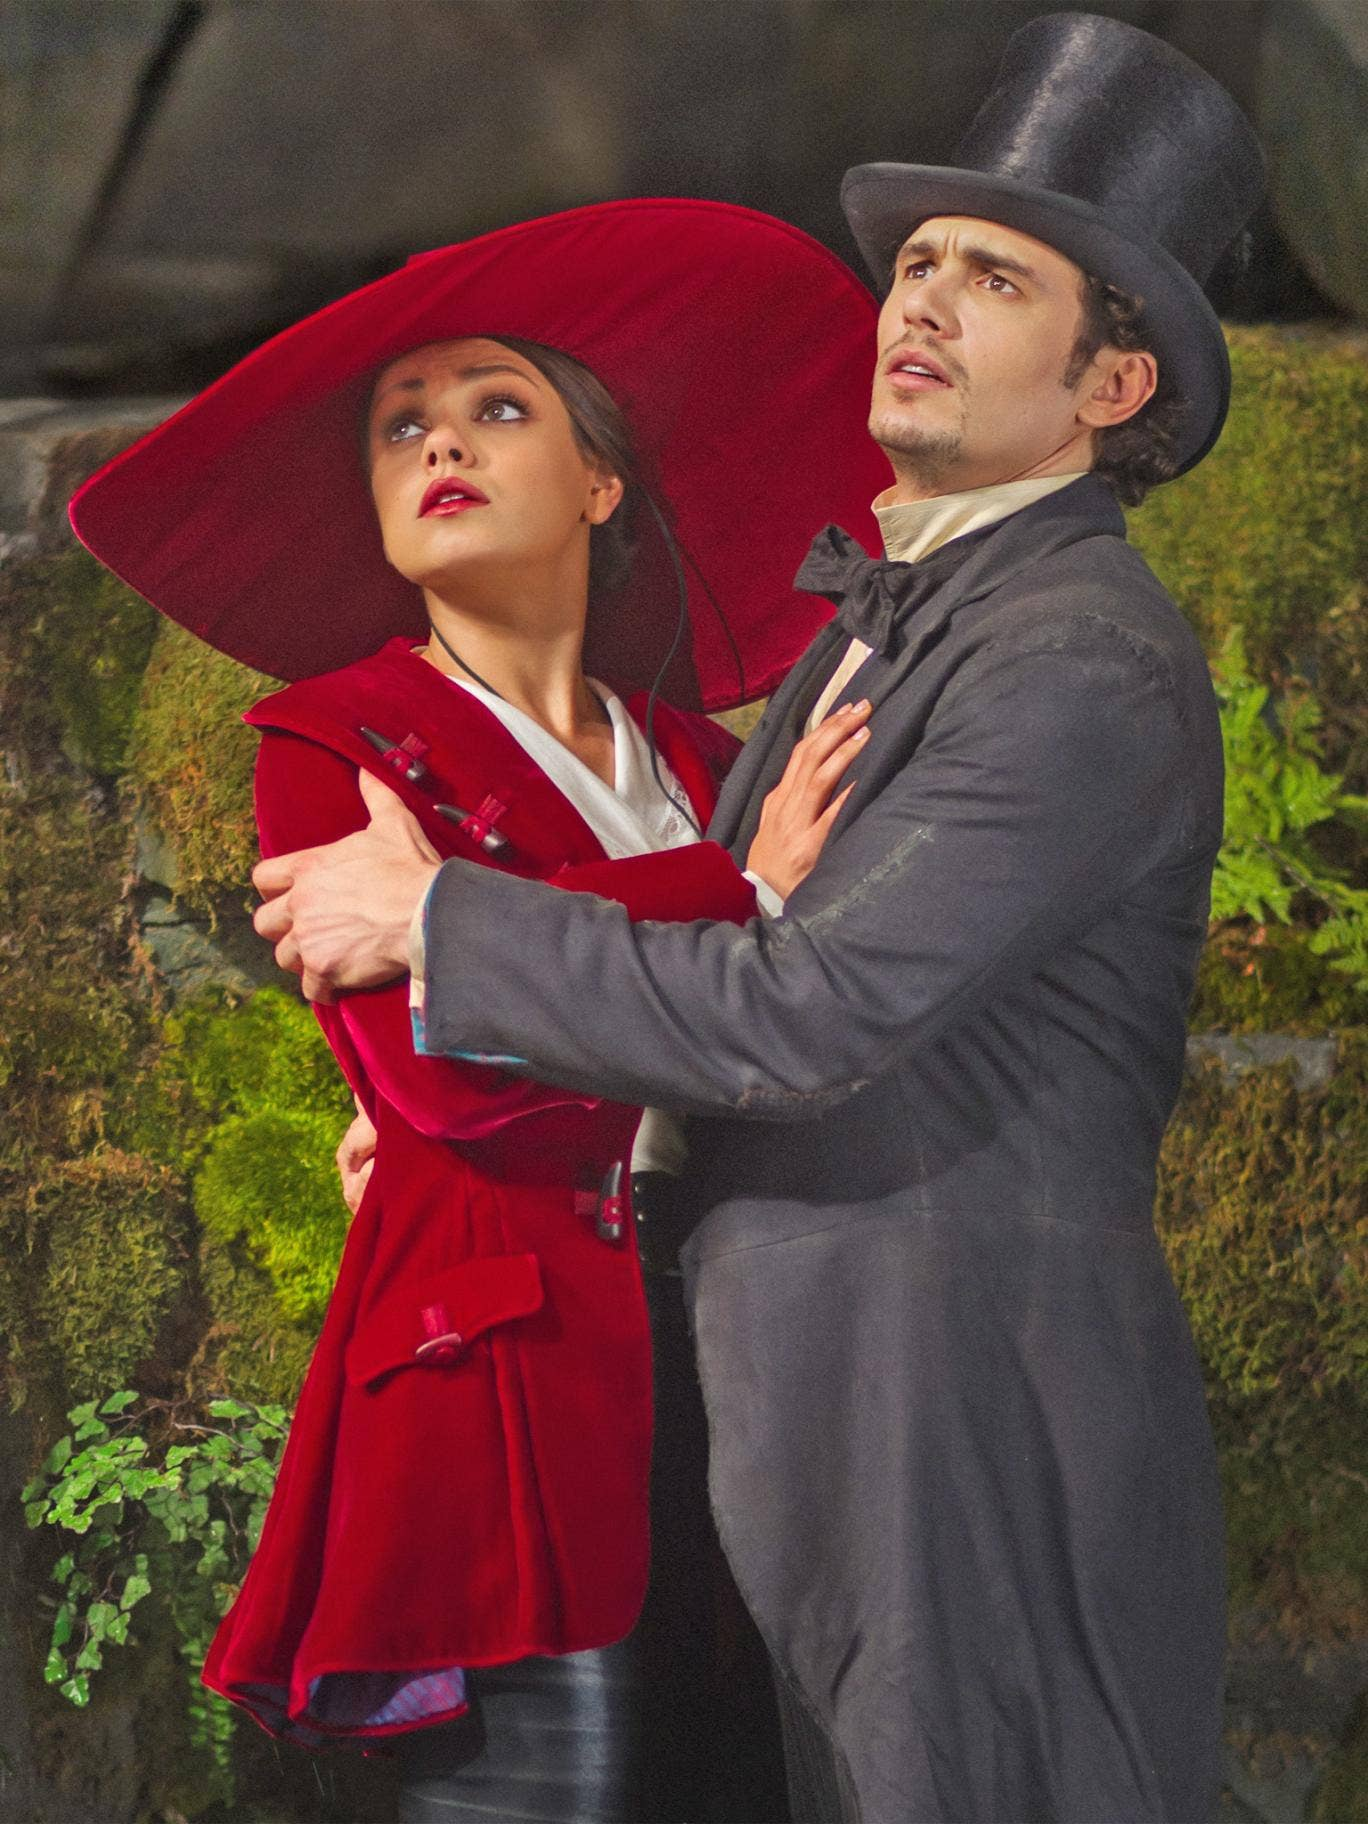 Mila Kunis and James Franco in 'Oz: the Great and Powerful'